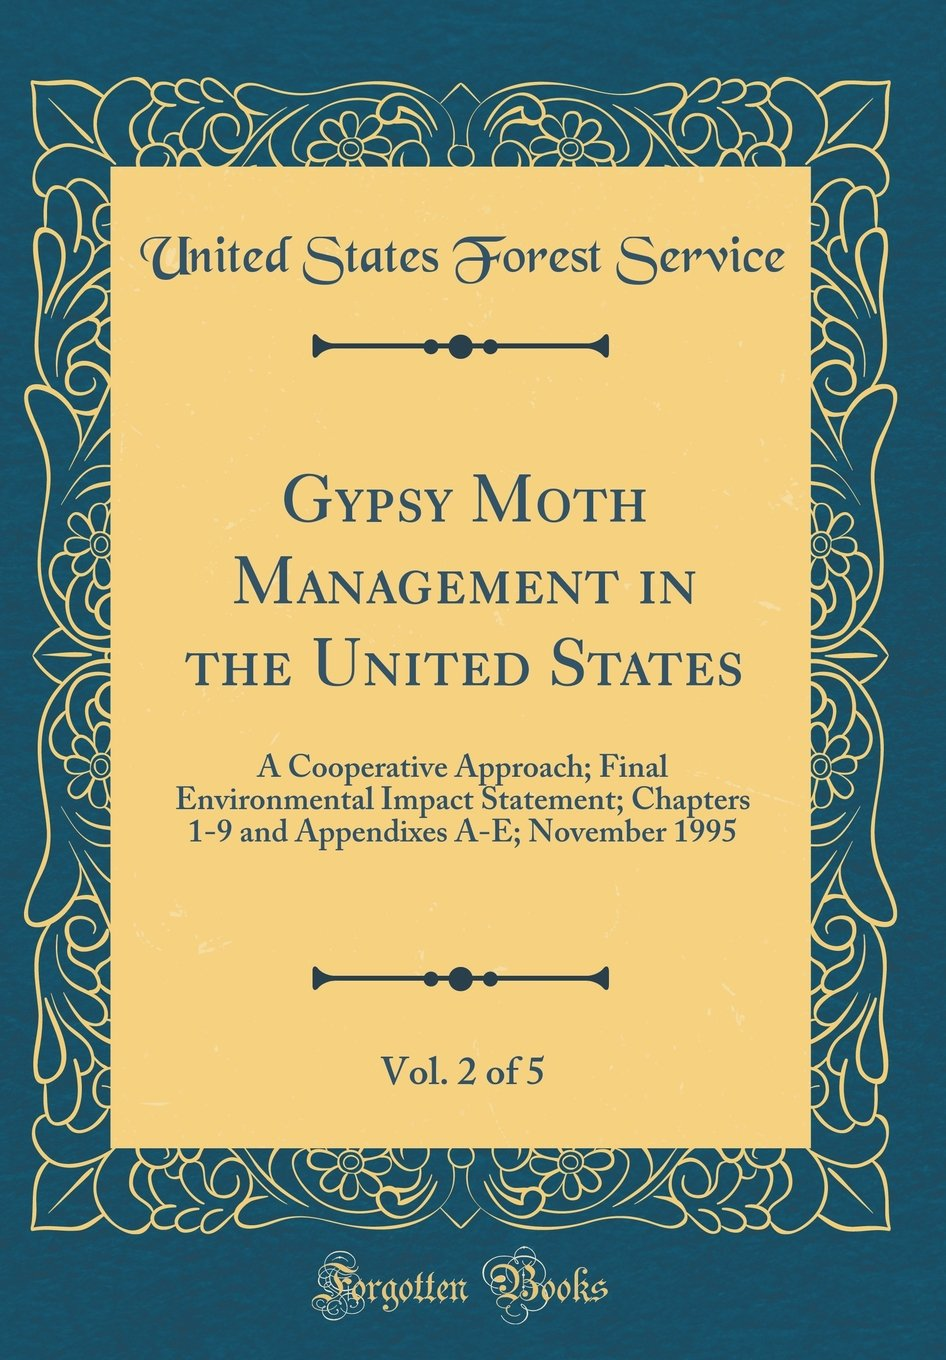 Download Gypsy Moth Management in the United States, Vol. 2 of 5: A Cooperative Approach; Final Environmental Impact Statement; Chapters 1-9 and Appendixes A-E; November 1995 (Classic Reprint) ebook